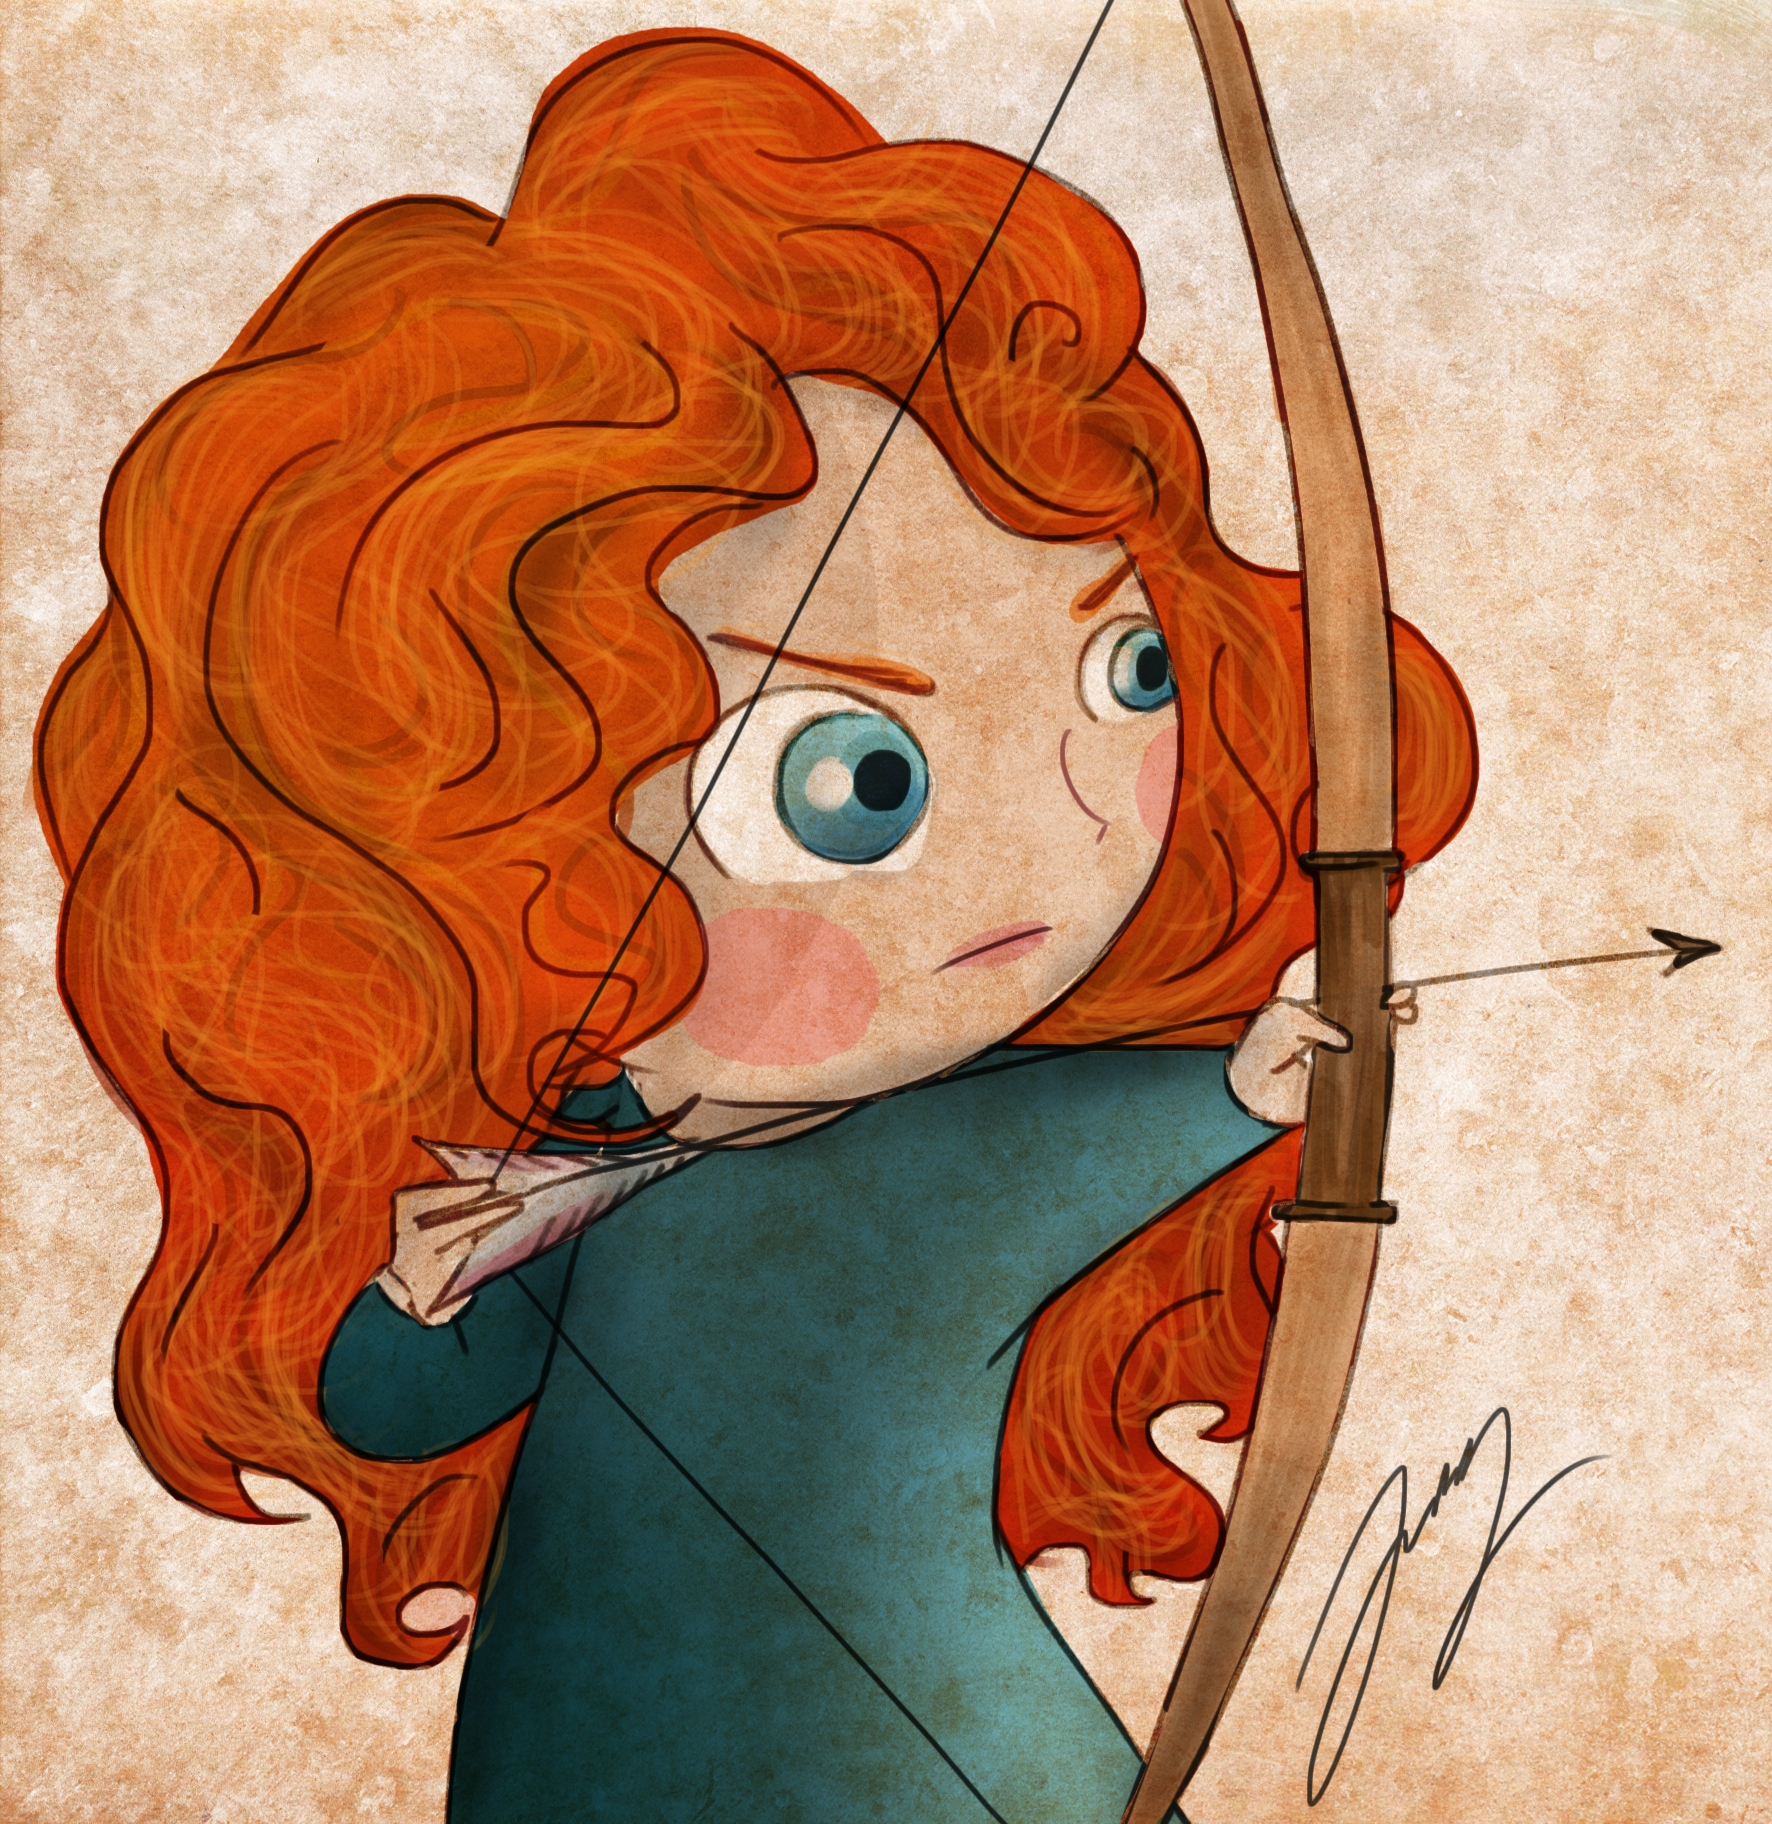 Baby Merida Digital Illustratio - lucylodraws | ello